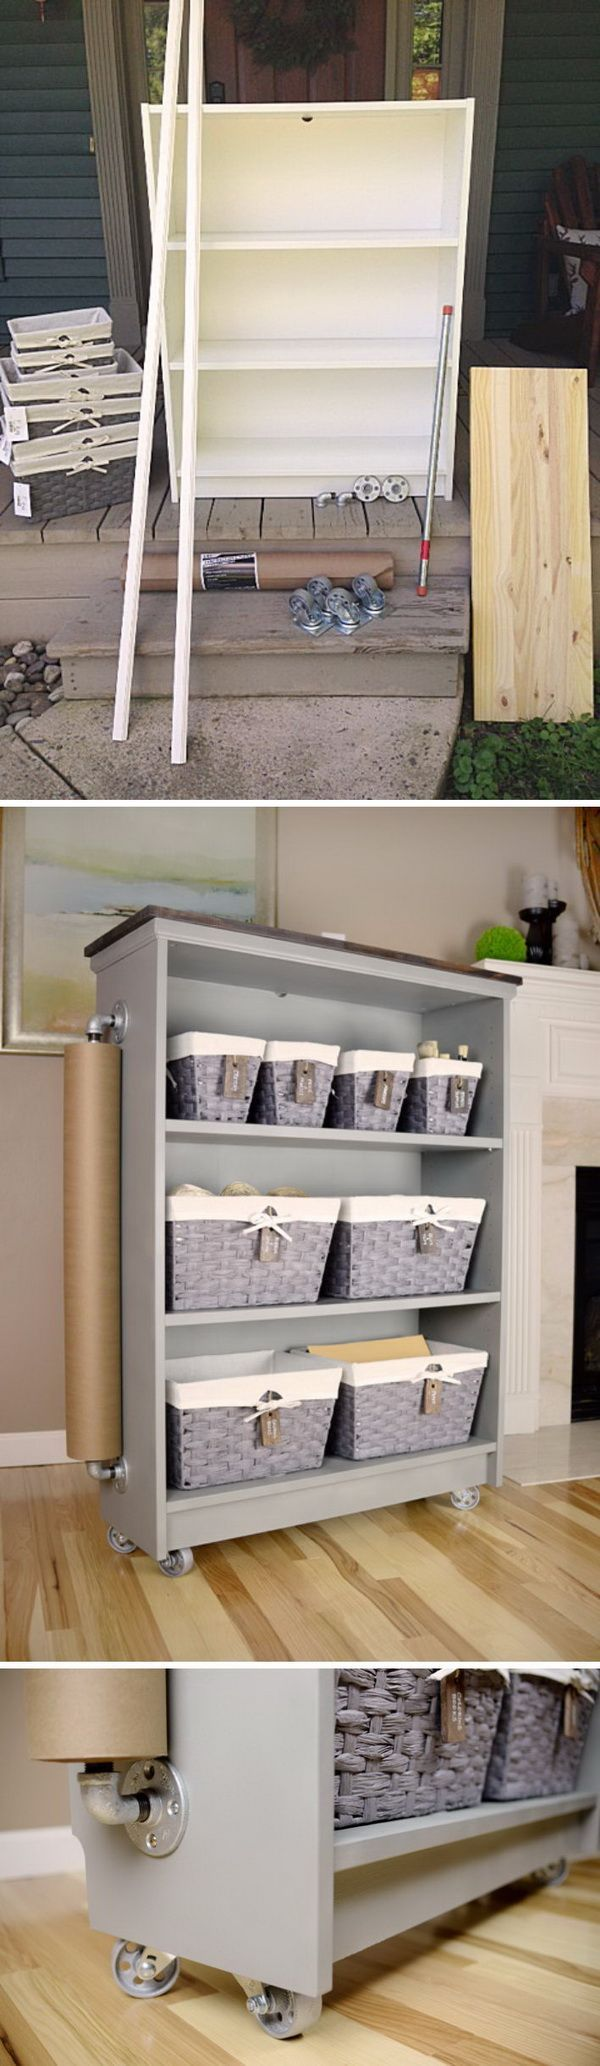 Rolling craft cart with drawers - 30 Fabulous Furniture Makeover Diy Projects Ikea Billy Bookcase Turned Rolling Craft Cart